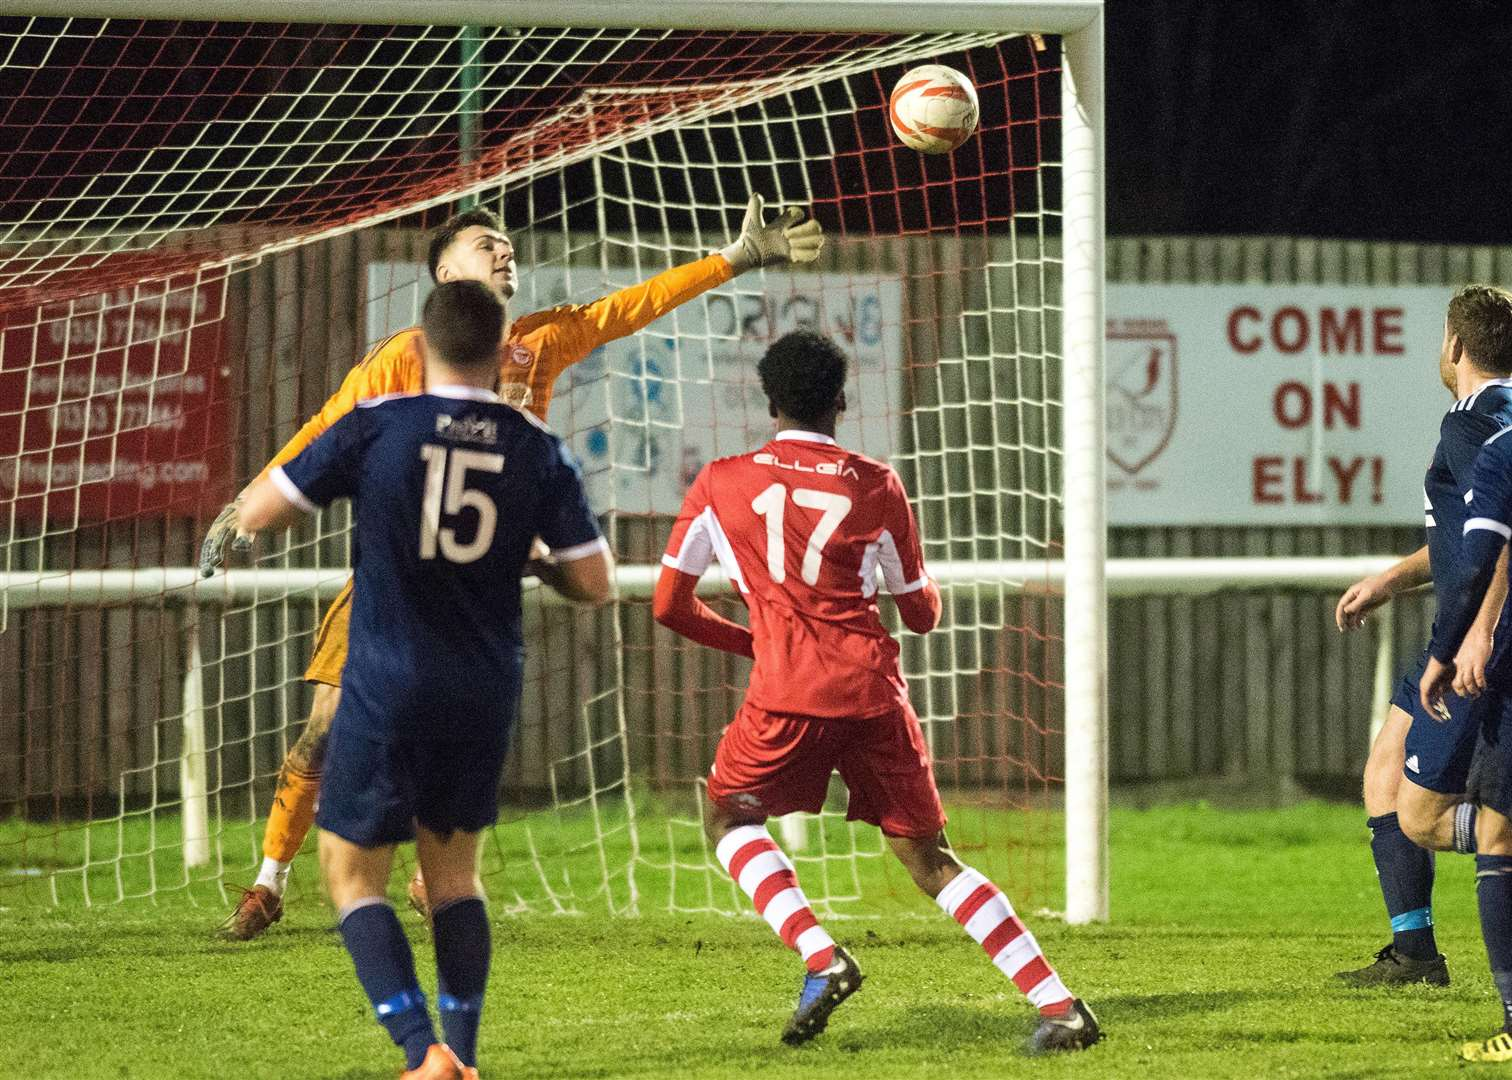 Football 3pm at Ely: Ely City v Haverhill Rovers Harry Daniels bags a goal for Ely Picture Mark Westley. (6245873)